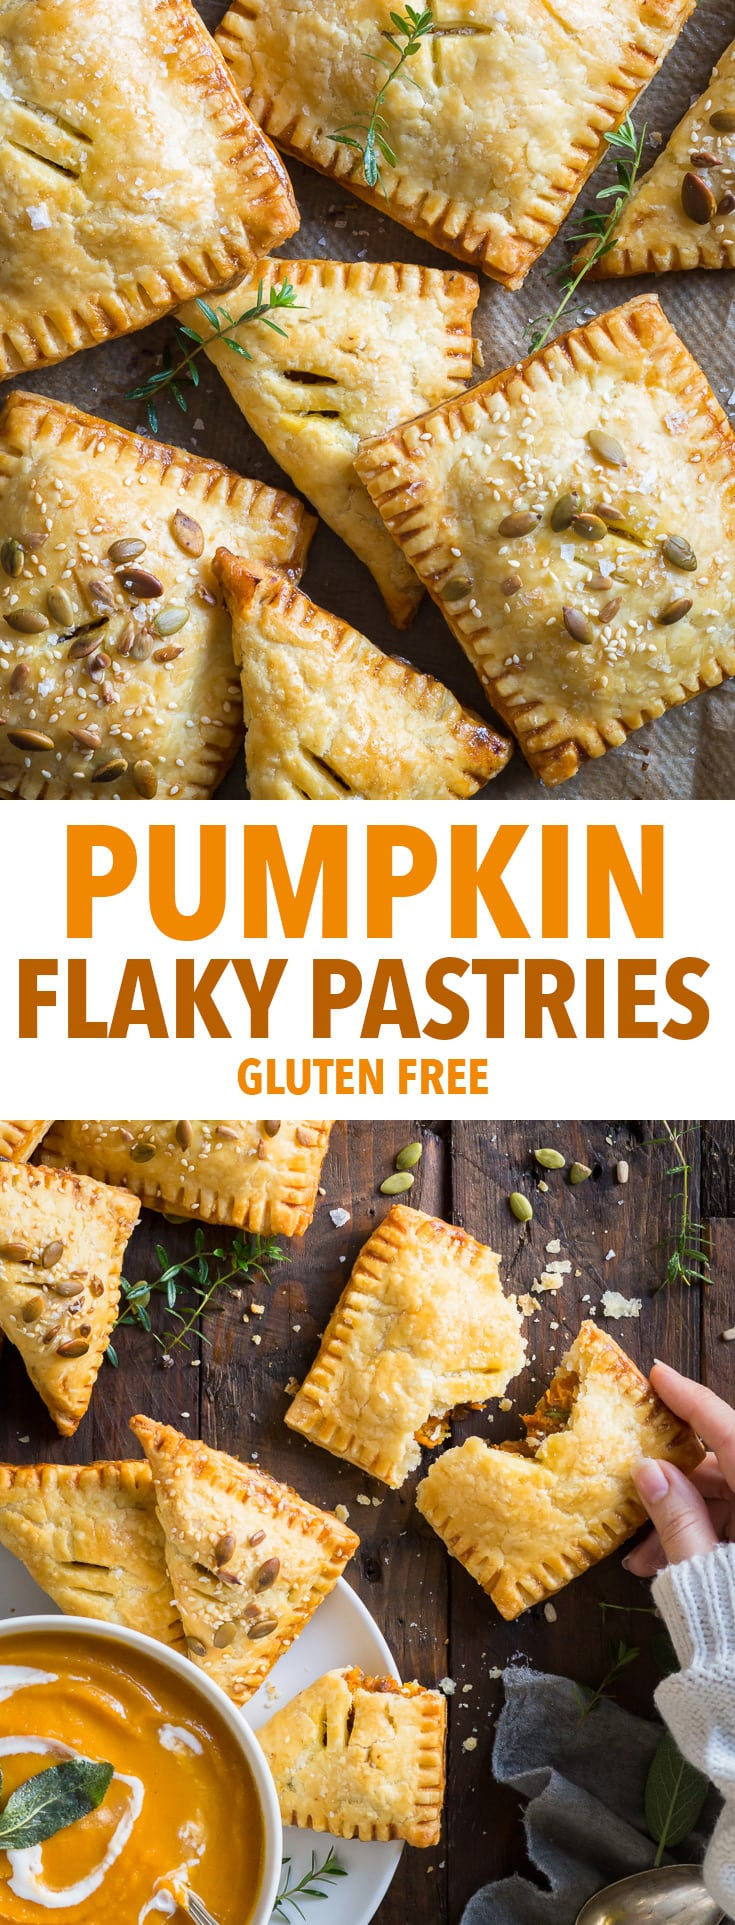 Pumpkin Flaky Pastries with Caramelised Onions and Cheddar (Gluten Free) - Gluten free pie crust so flaky it's almost puff pastry + a pumpkin (or butternut squash) filling supercharged with flavour… these pumpkin flaky pastries are the perfect fall comfort food. Pumpkin recipes. Pumpkin spice. Butternut squash recipes. Gluten free pie crust. Gluten free recipes. Healthy lunch ideas. Healthy lunch recipes. Meal prep. Pie recipes. Easy recipe ideas. #pumpkin #fall #glutenfree #pie #recipes #food